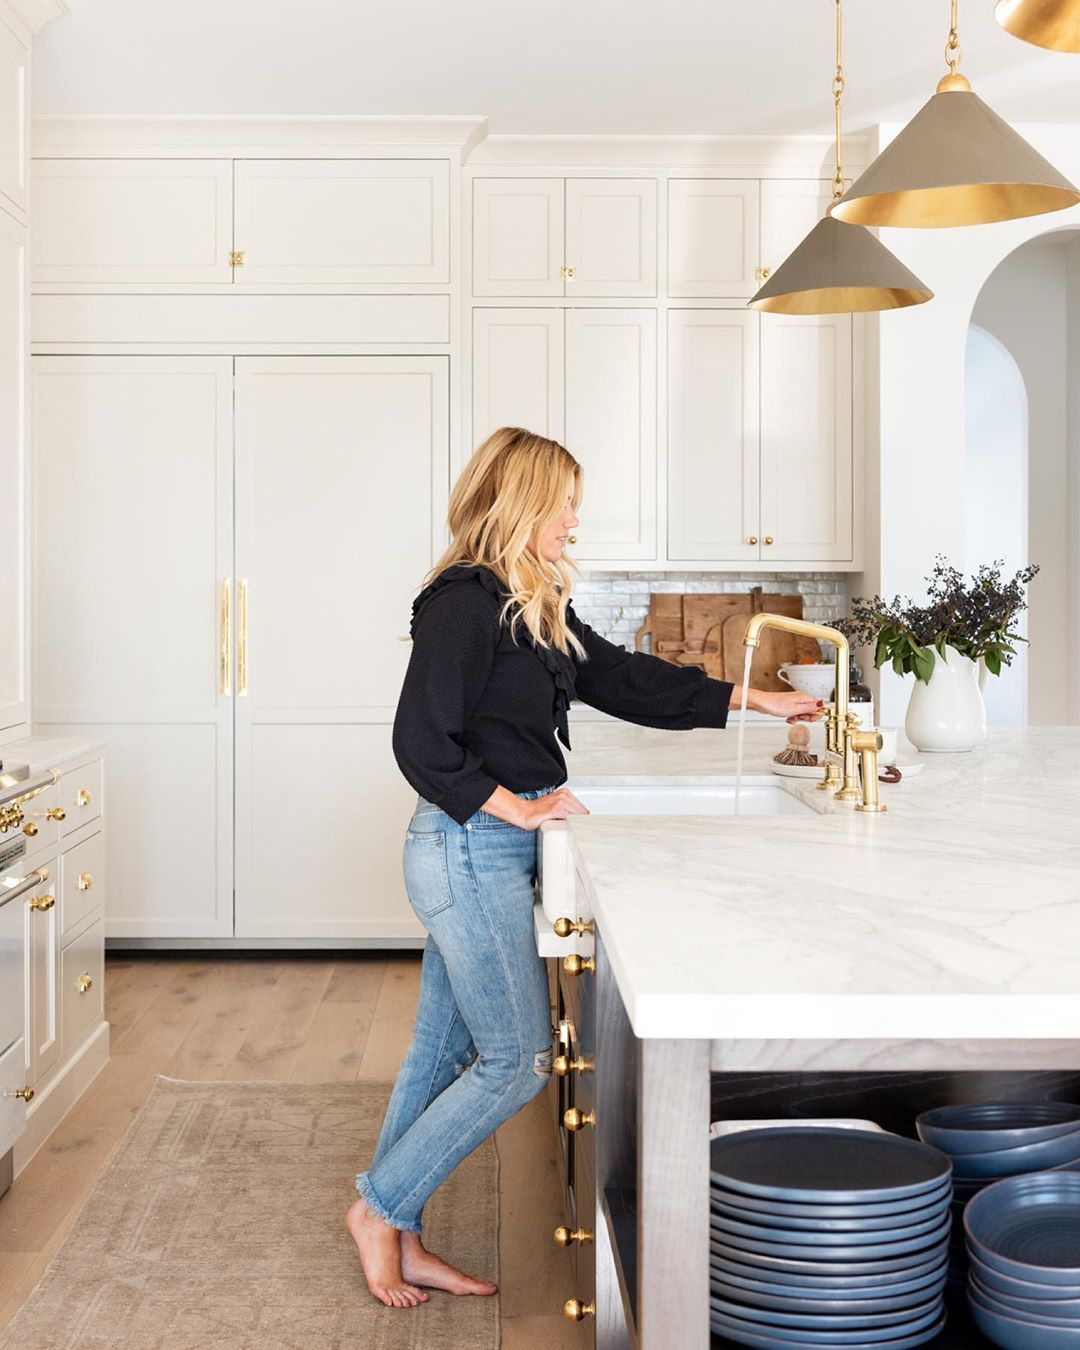 Love The Cabinet Profile Color Arch Size Of Island Set Up Cabinets Distance Between Island And Cab In 2020 Brass Faucet Unlacquered Brass Faucet Unlacquered Brass